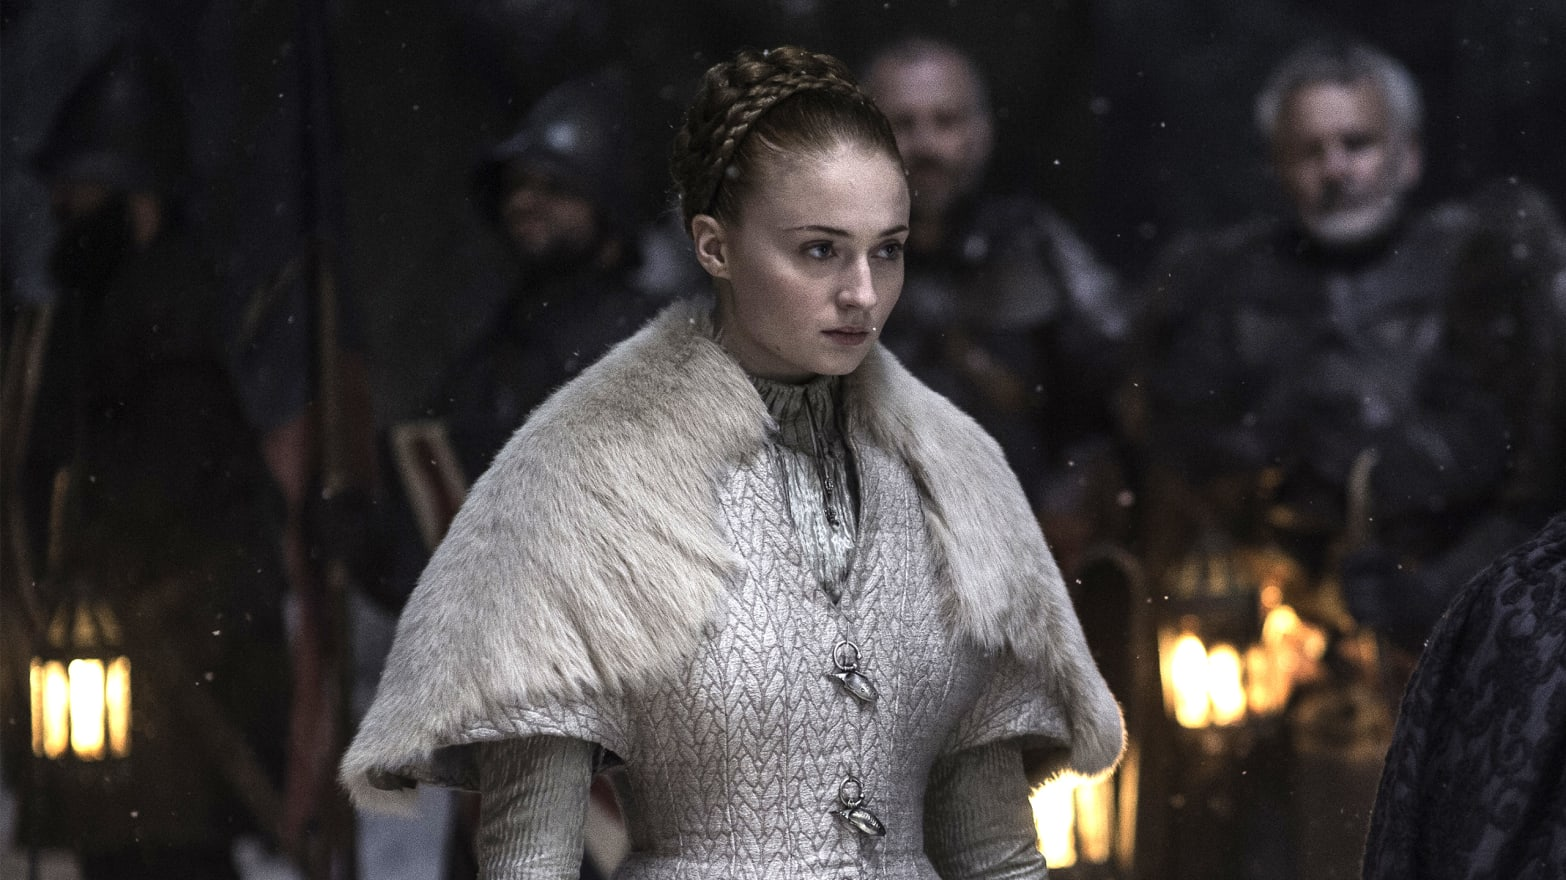 The Rape of Sansa Stark: 'Game of Thrones' Goes Off-Book and